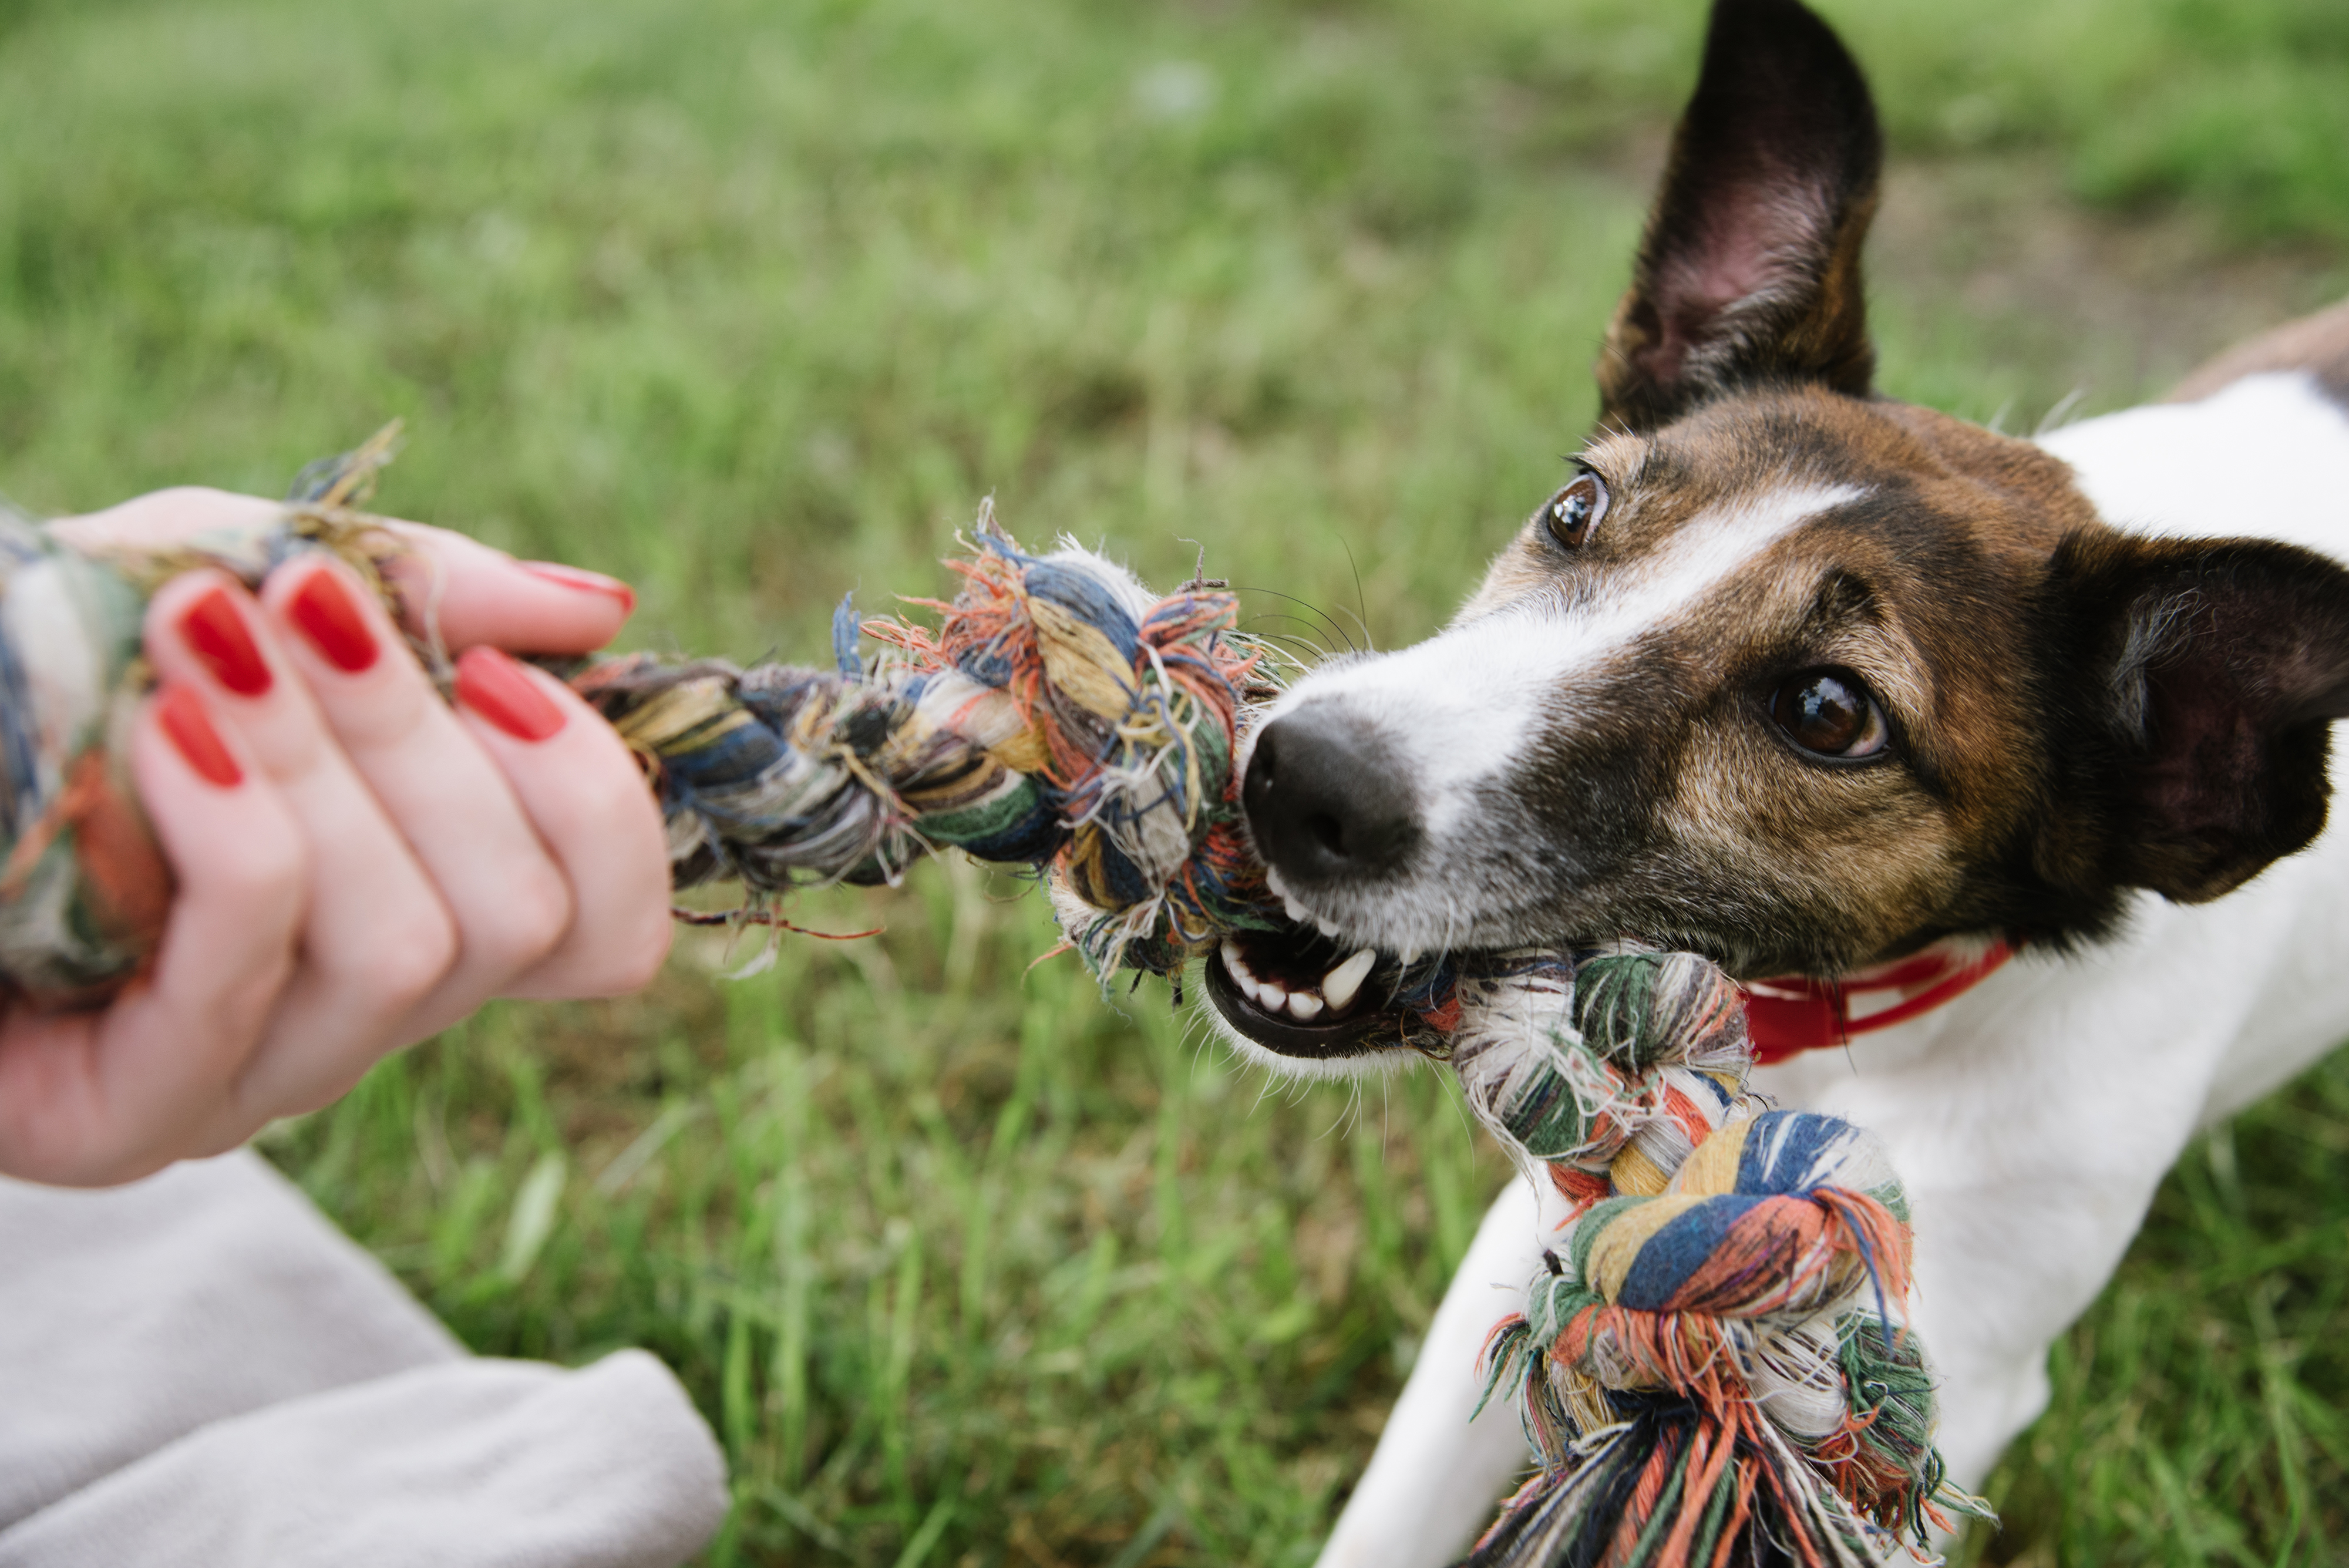 dog-play-with-rope-610958338_4000x2670.jpeg